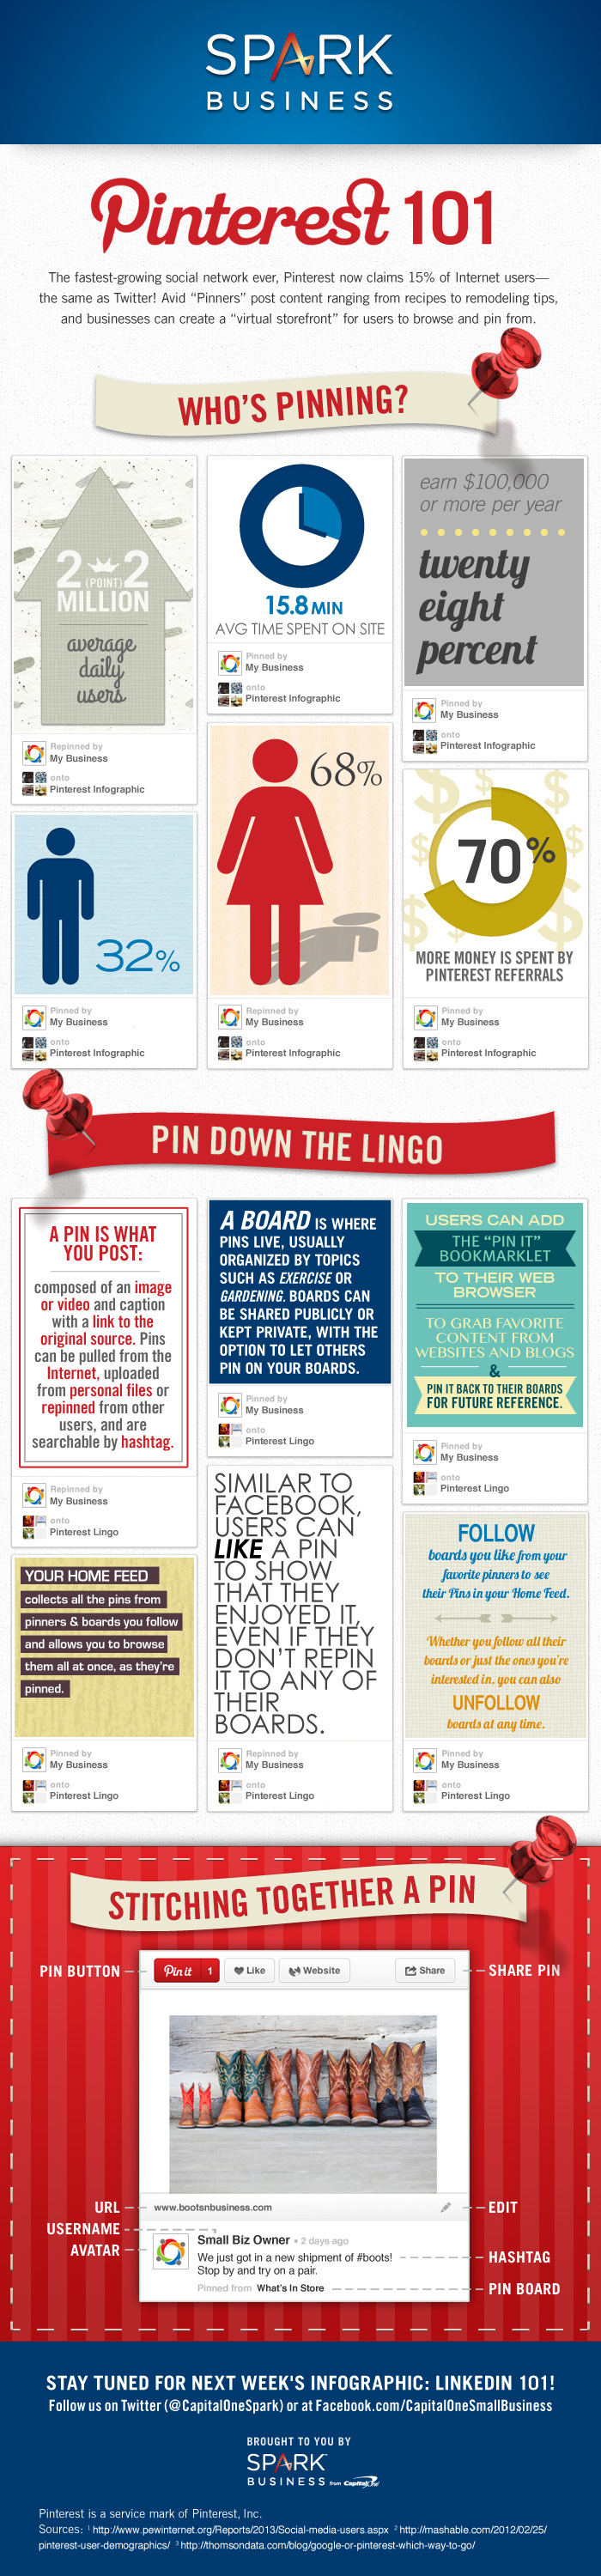 We thought this was quite ironic to post...Is this Infographic true? What do you think? Check out this week's #socialmedia #infographic